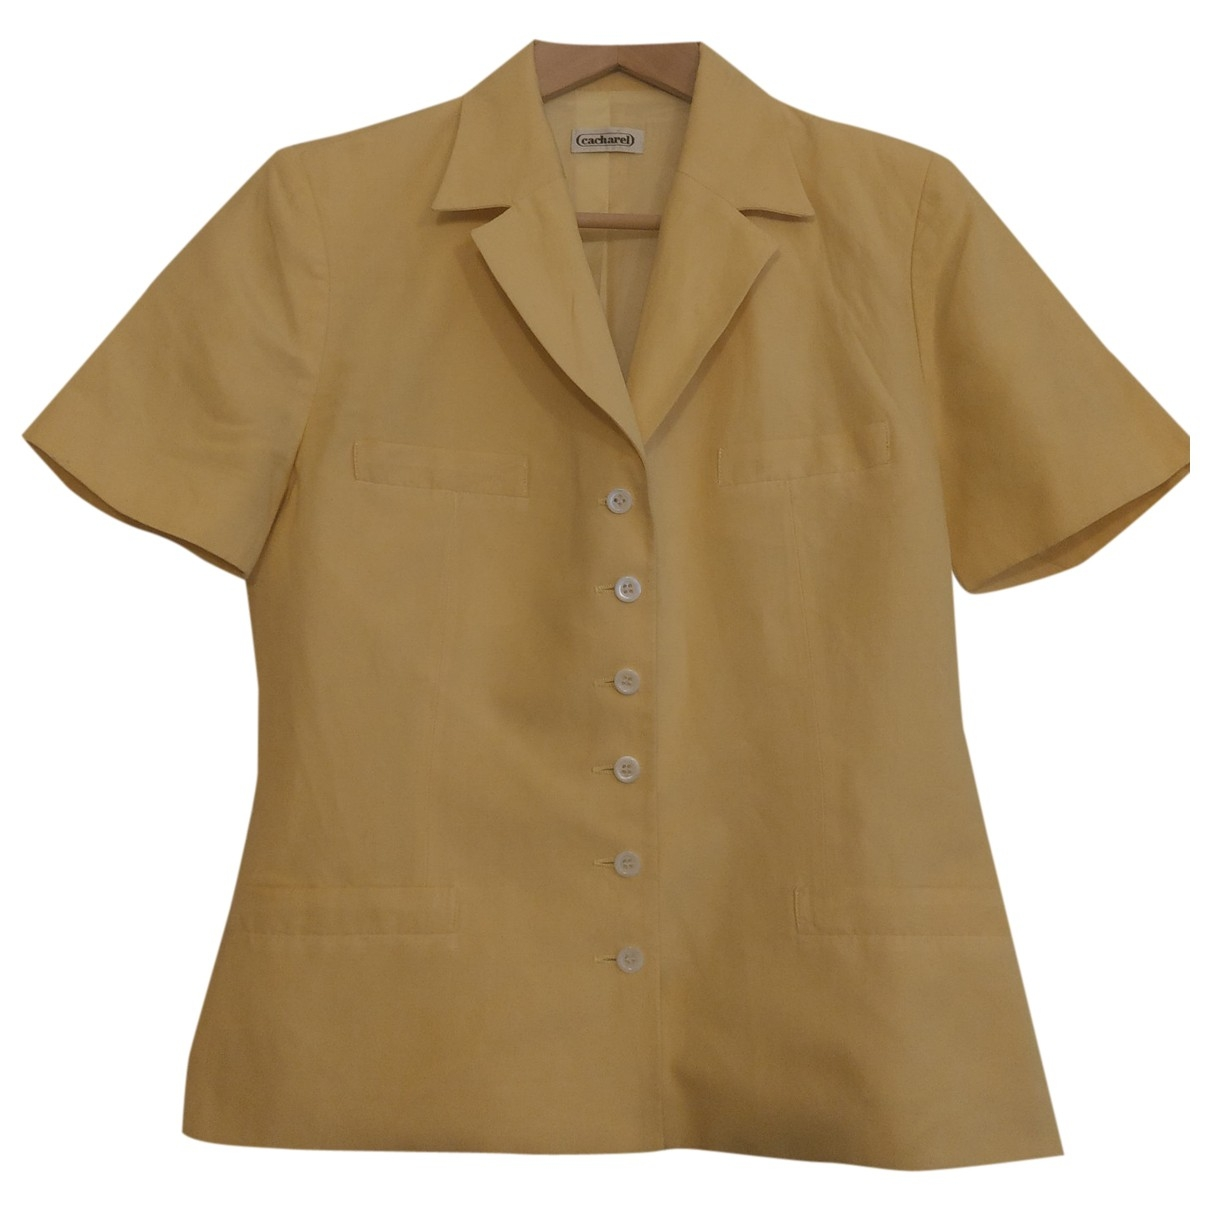 Cacharel \N Yellow Linen jacket for Women 38 FR